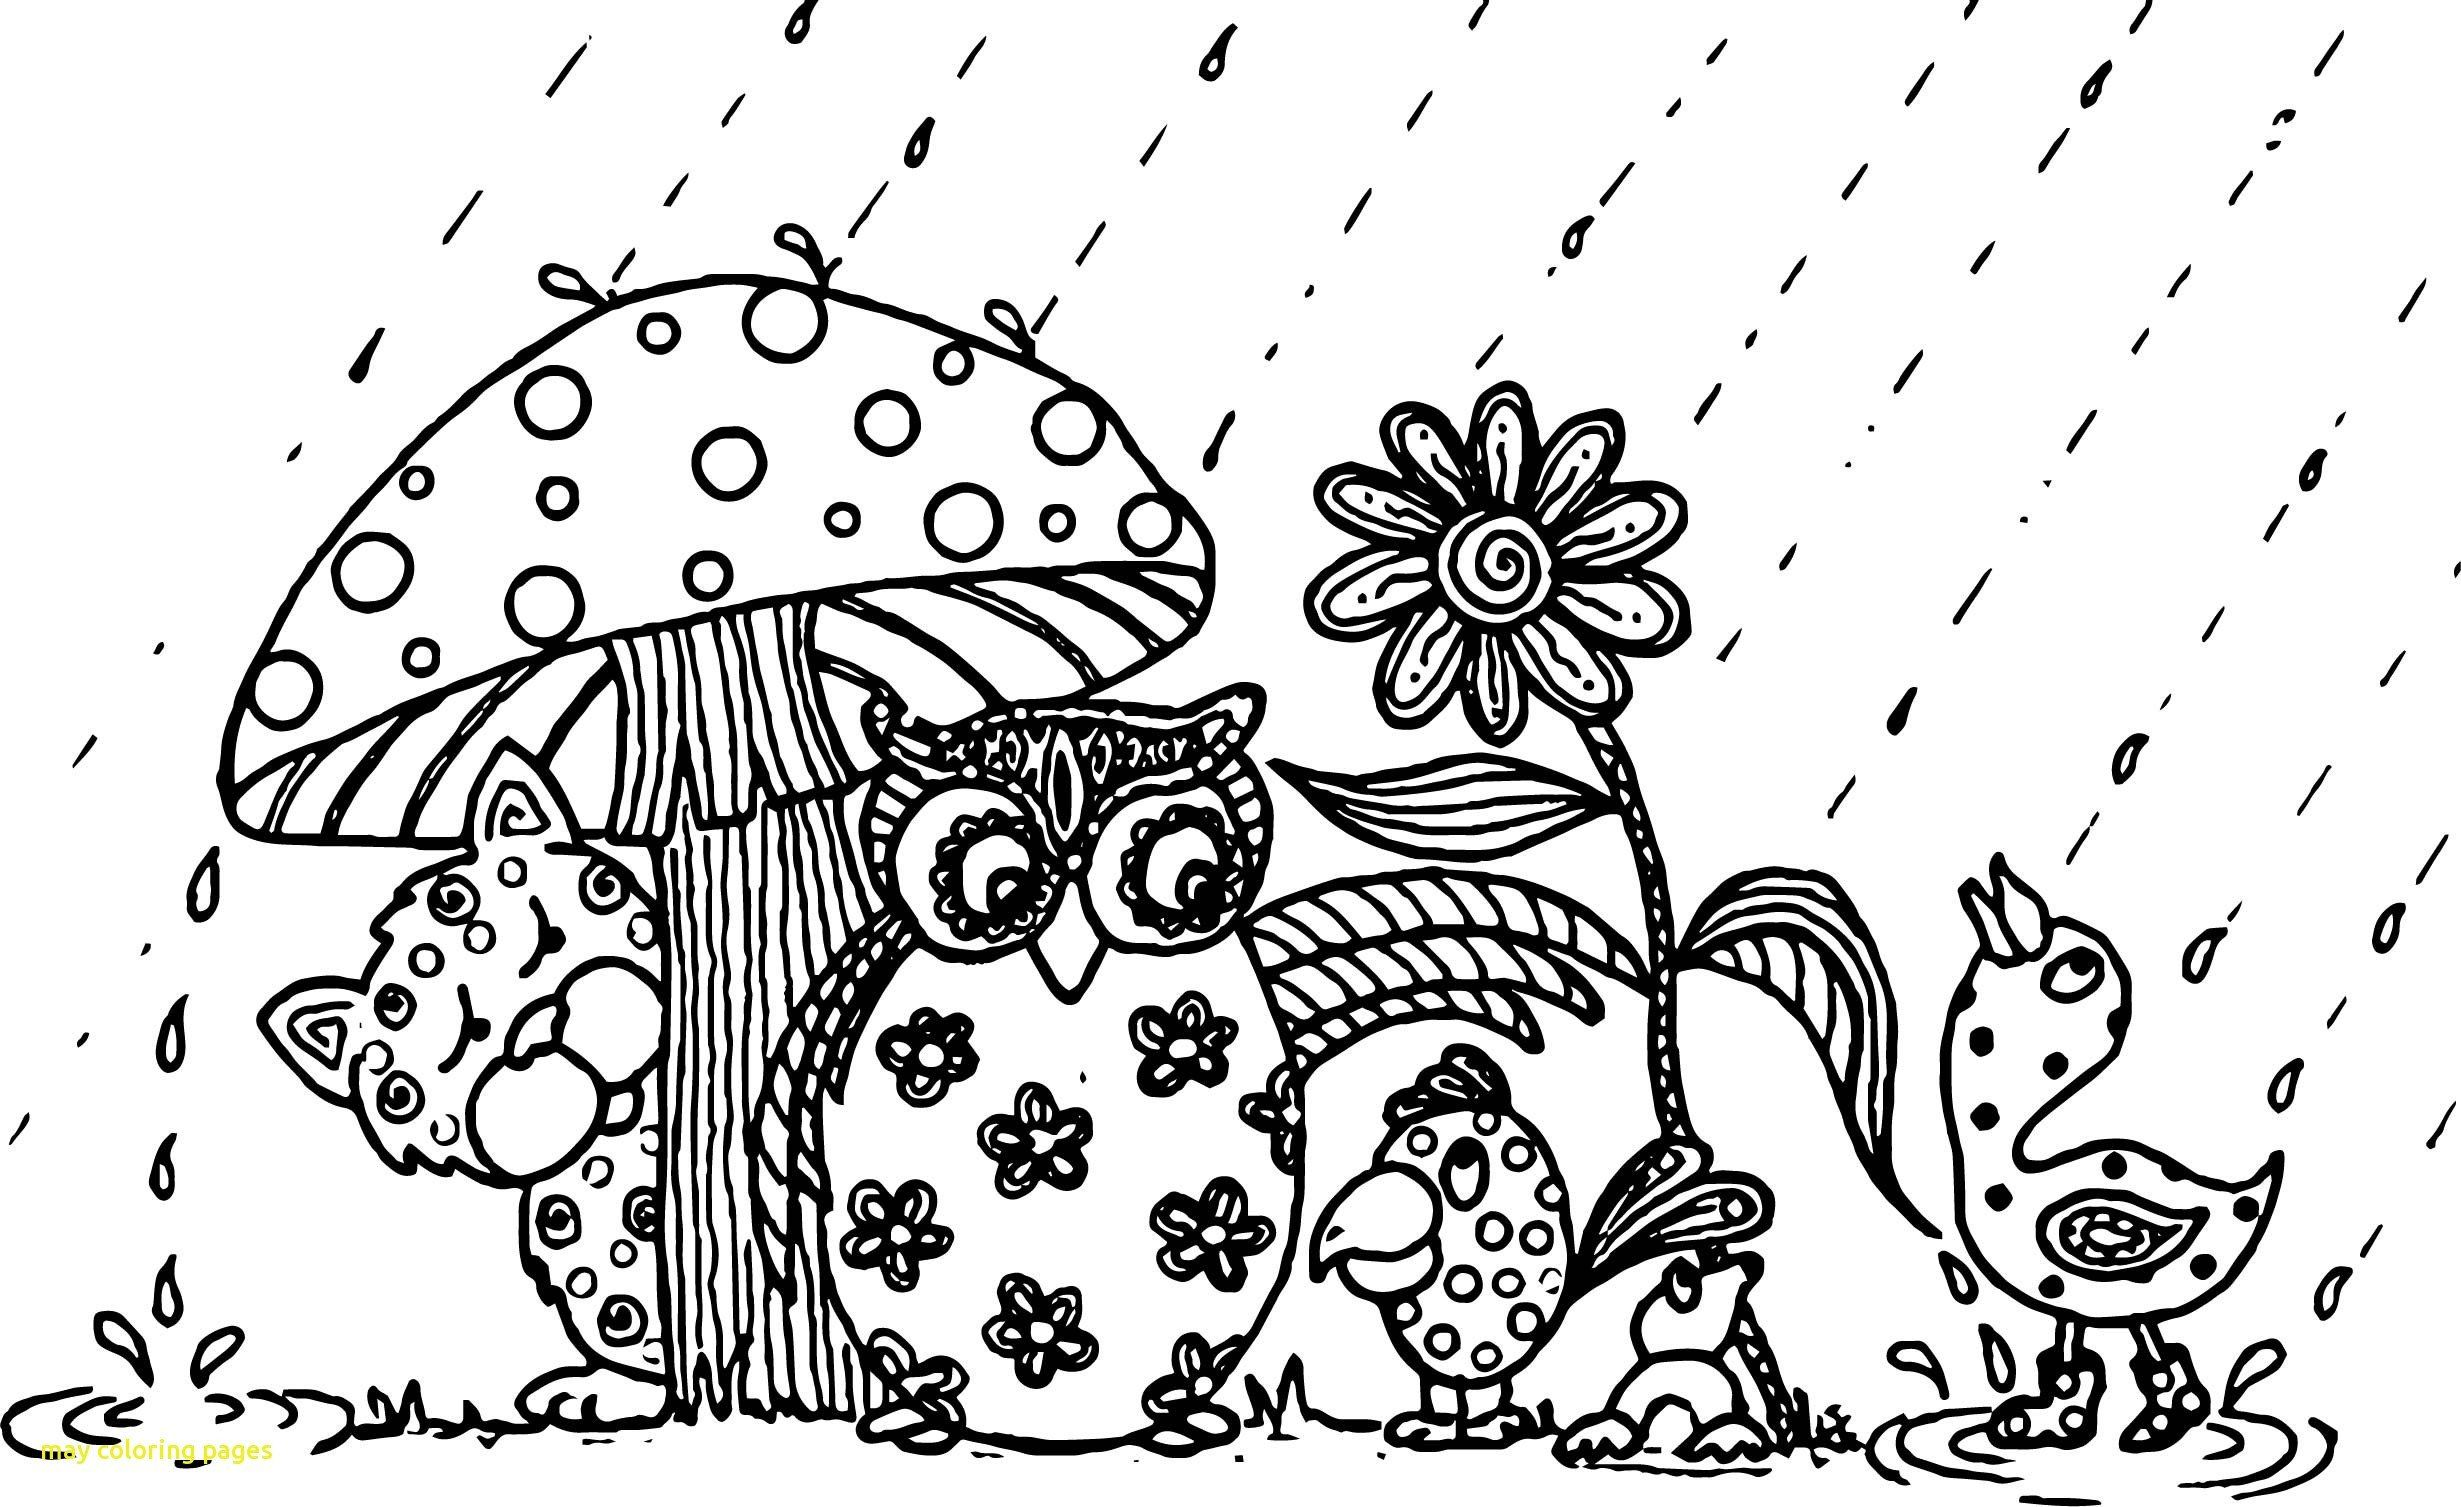 Police Badge Coloring Page Luxury April Shower Animals Coloring